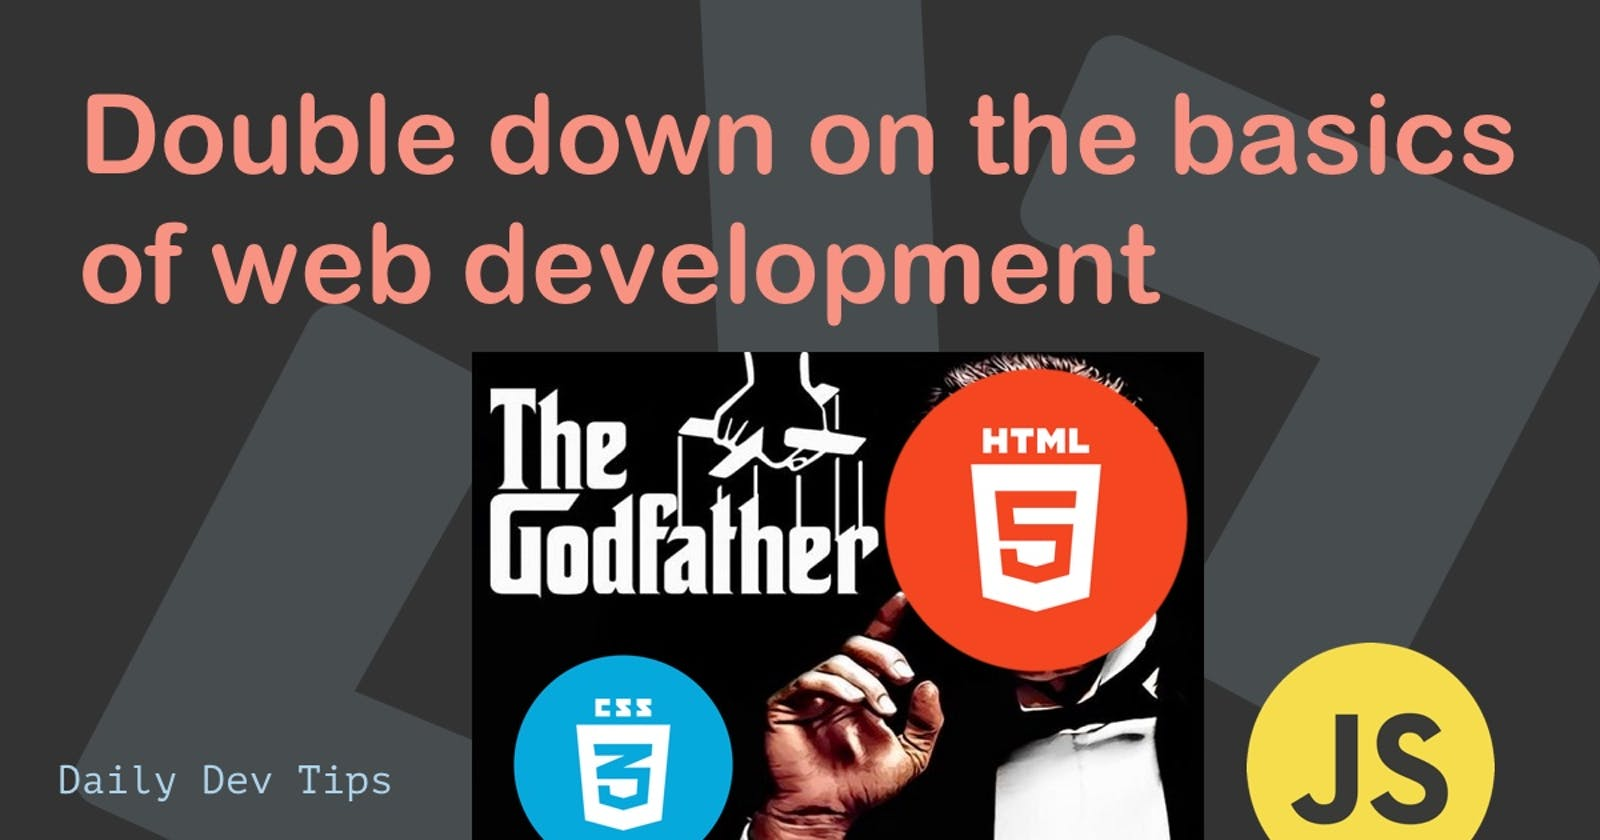 Double down on the basics of web development